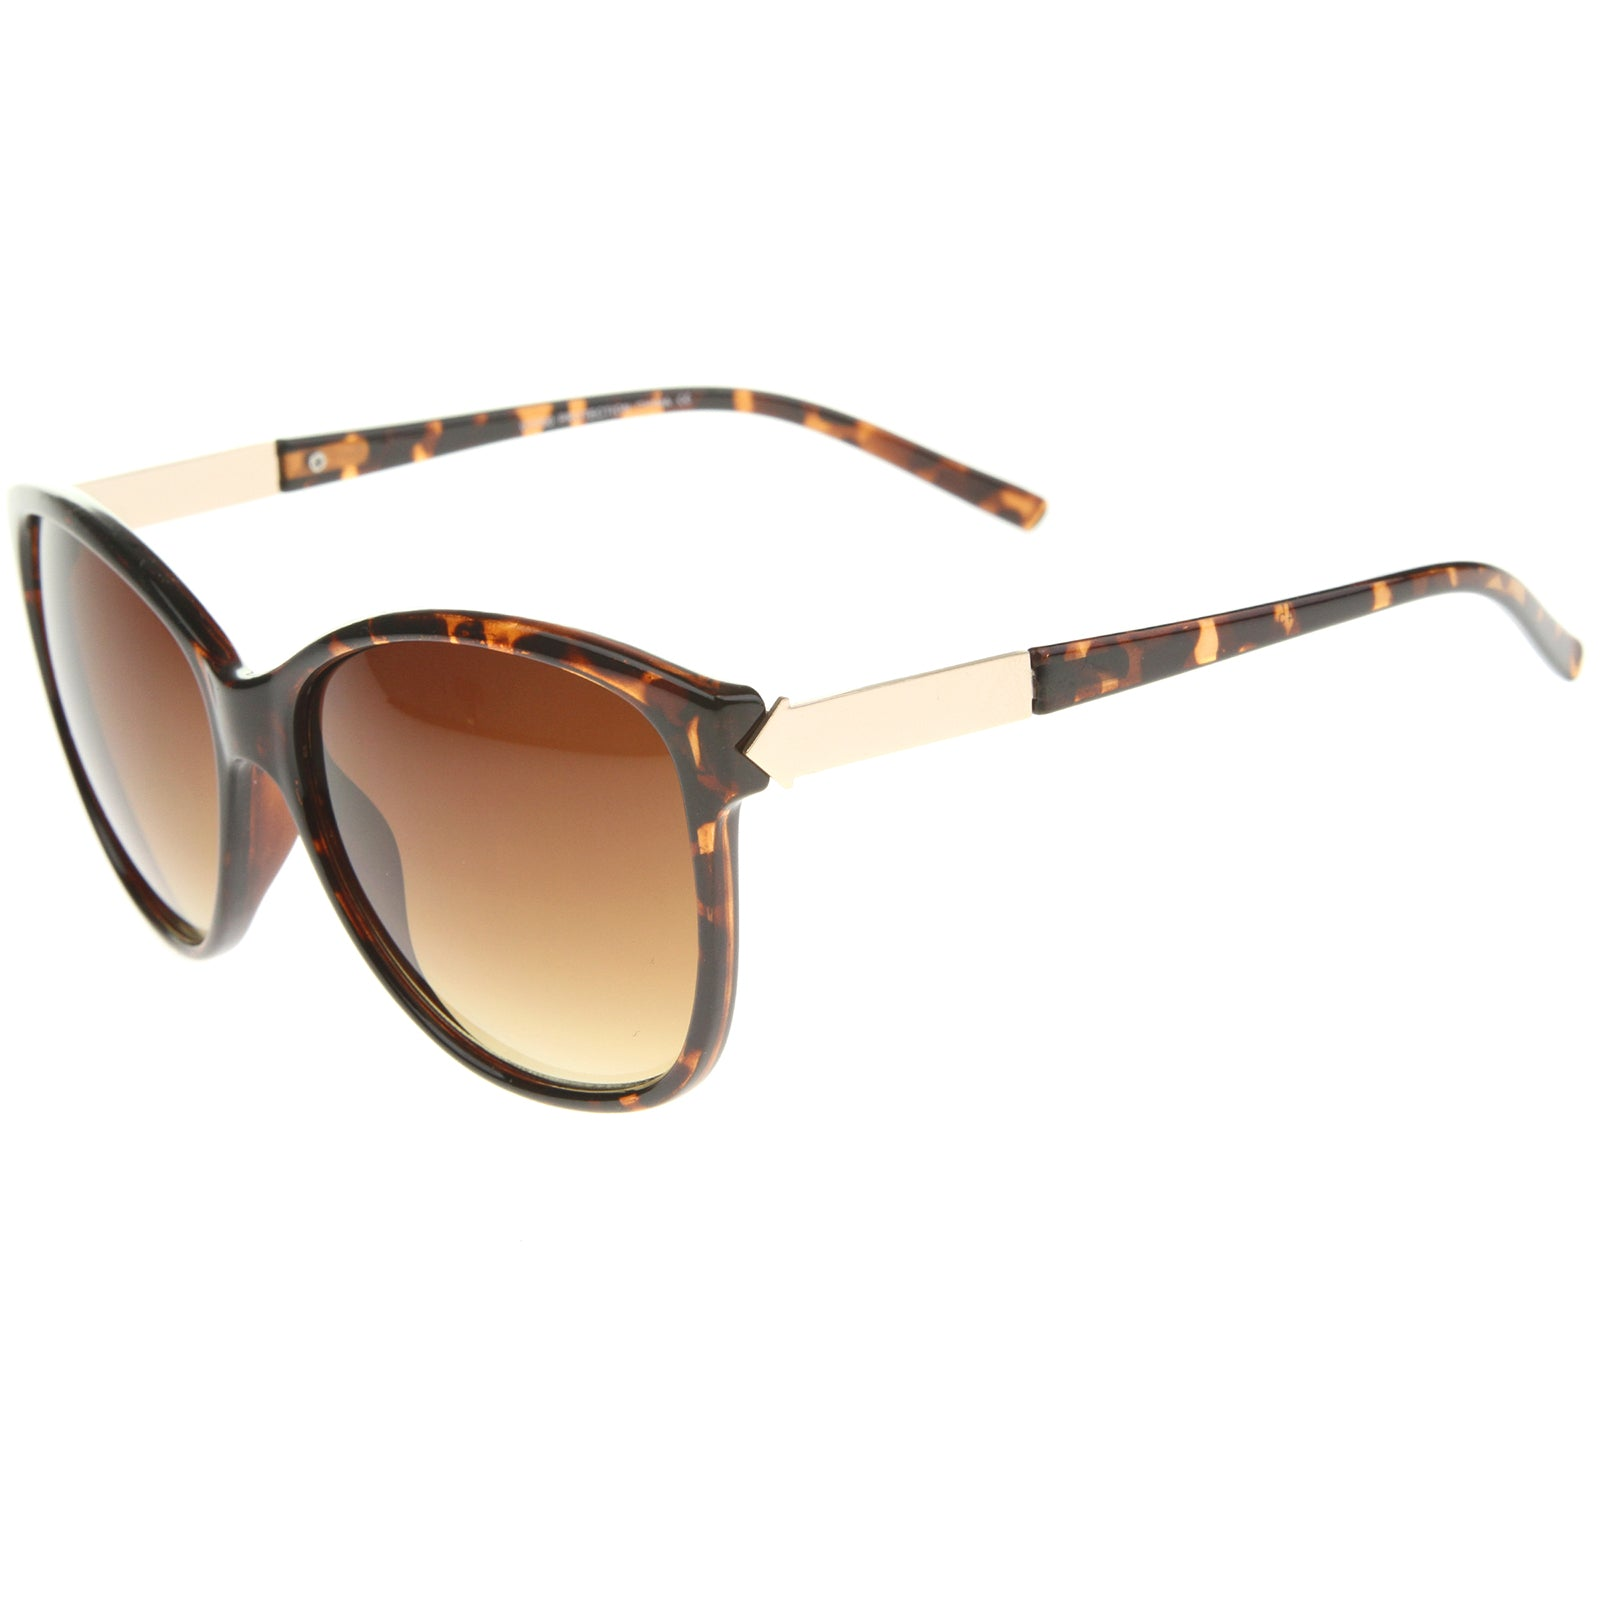 Women's Glam Fashion Metal Temple Oversize Cat Eye Sunglasses 59mm - sunglass.la - 11